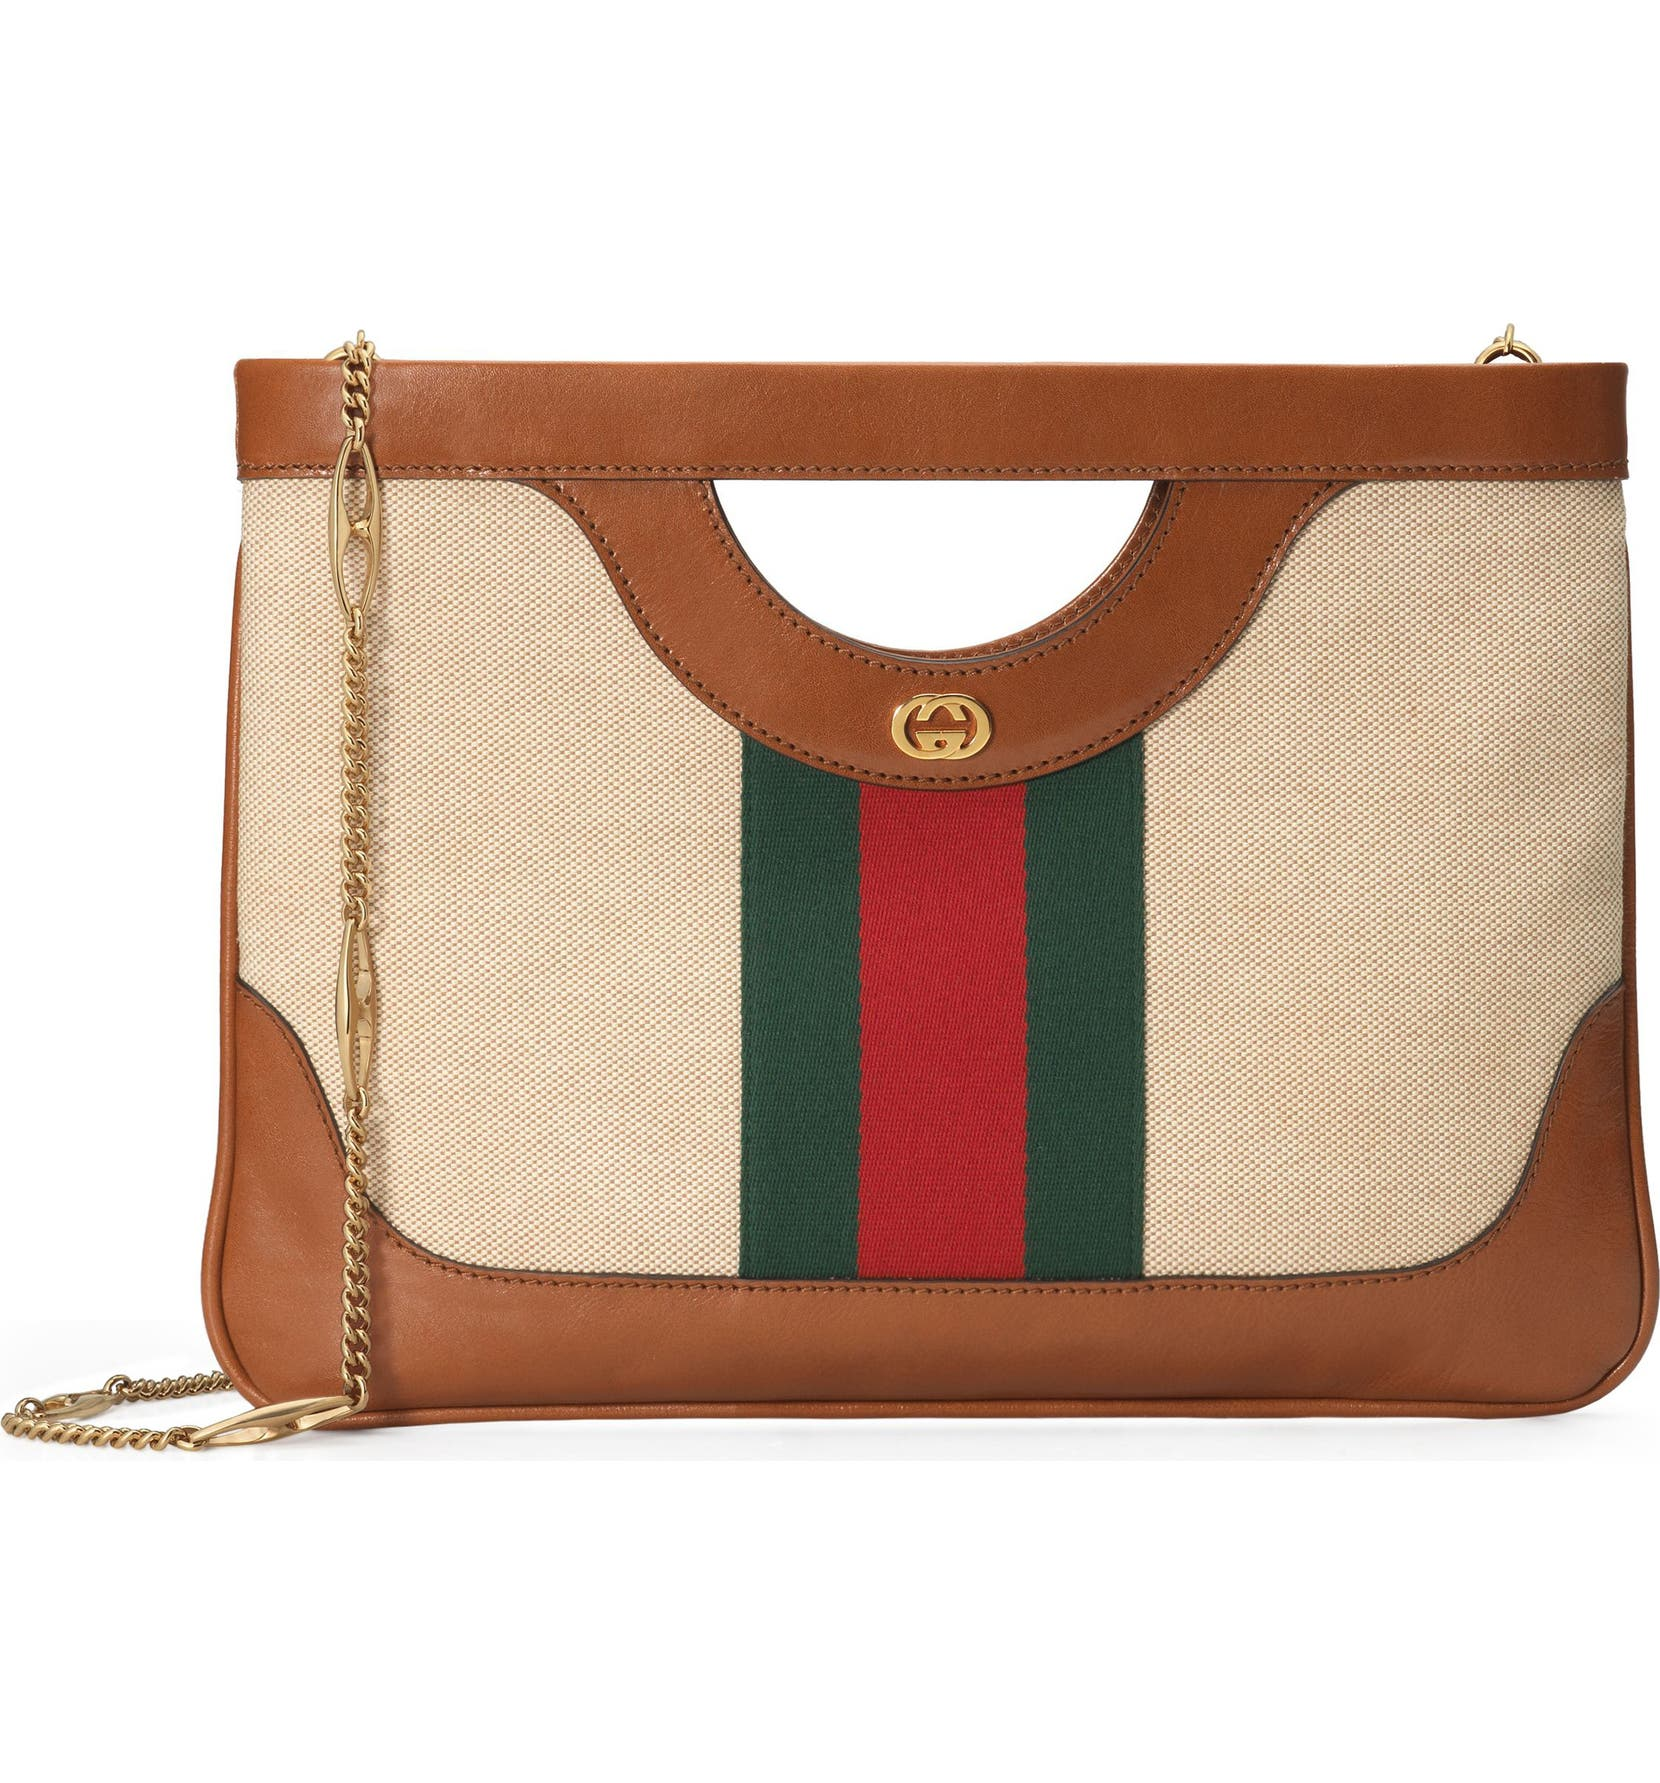 7517c9518d91 Gucci GG Vintage Canvas & Leather Shoulder Bag | Nordstrom